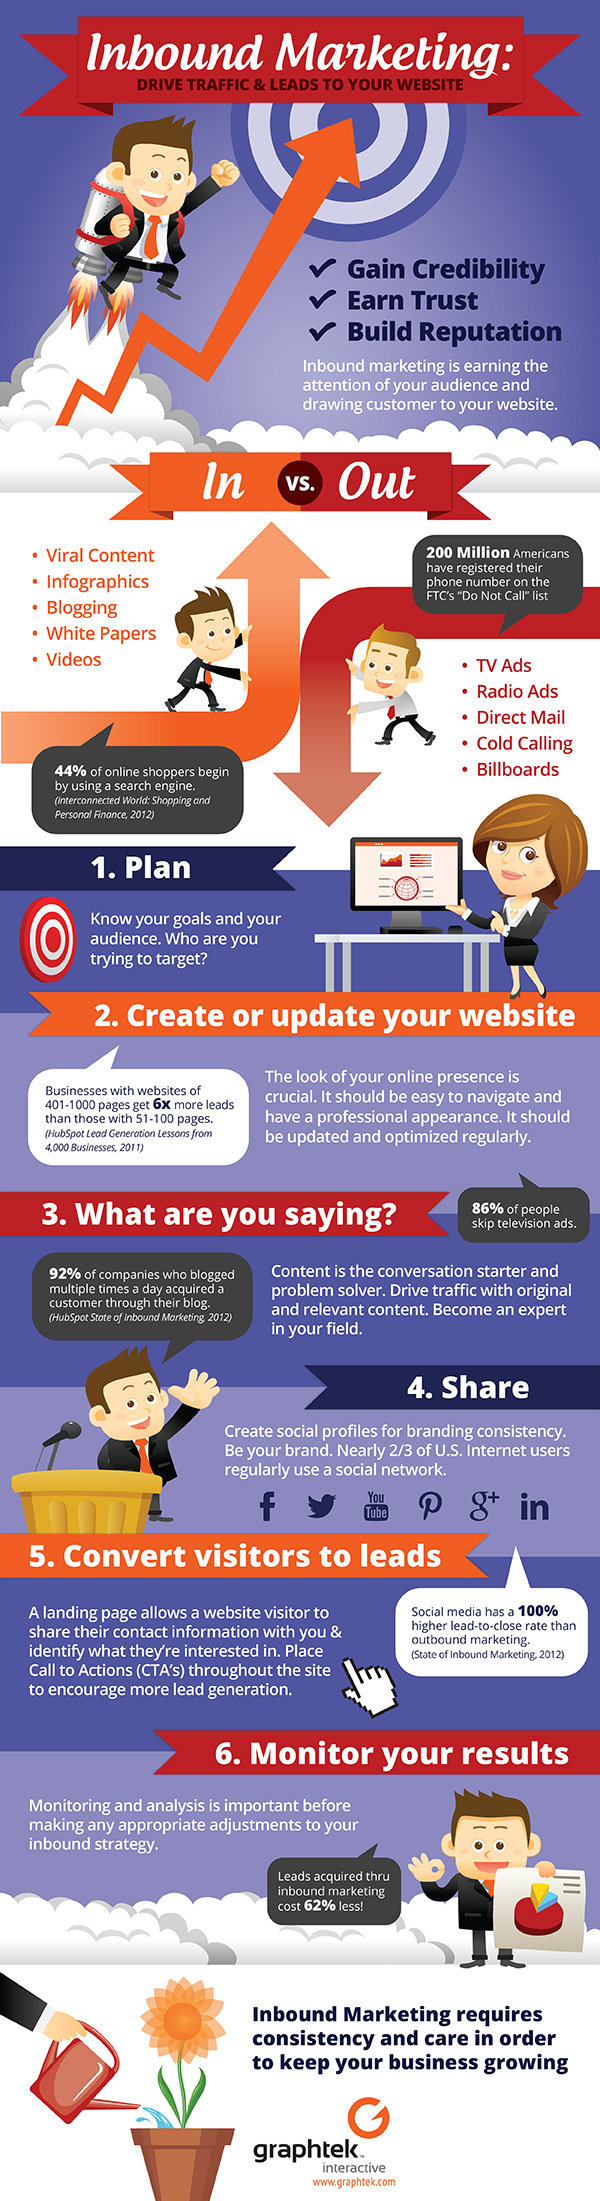 Inbound marketing #infographic